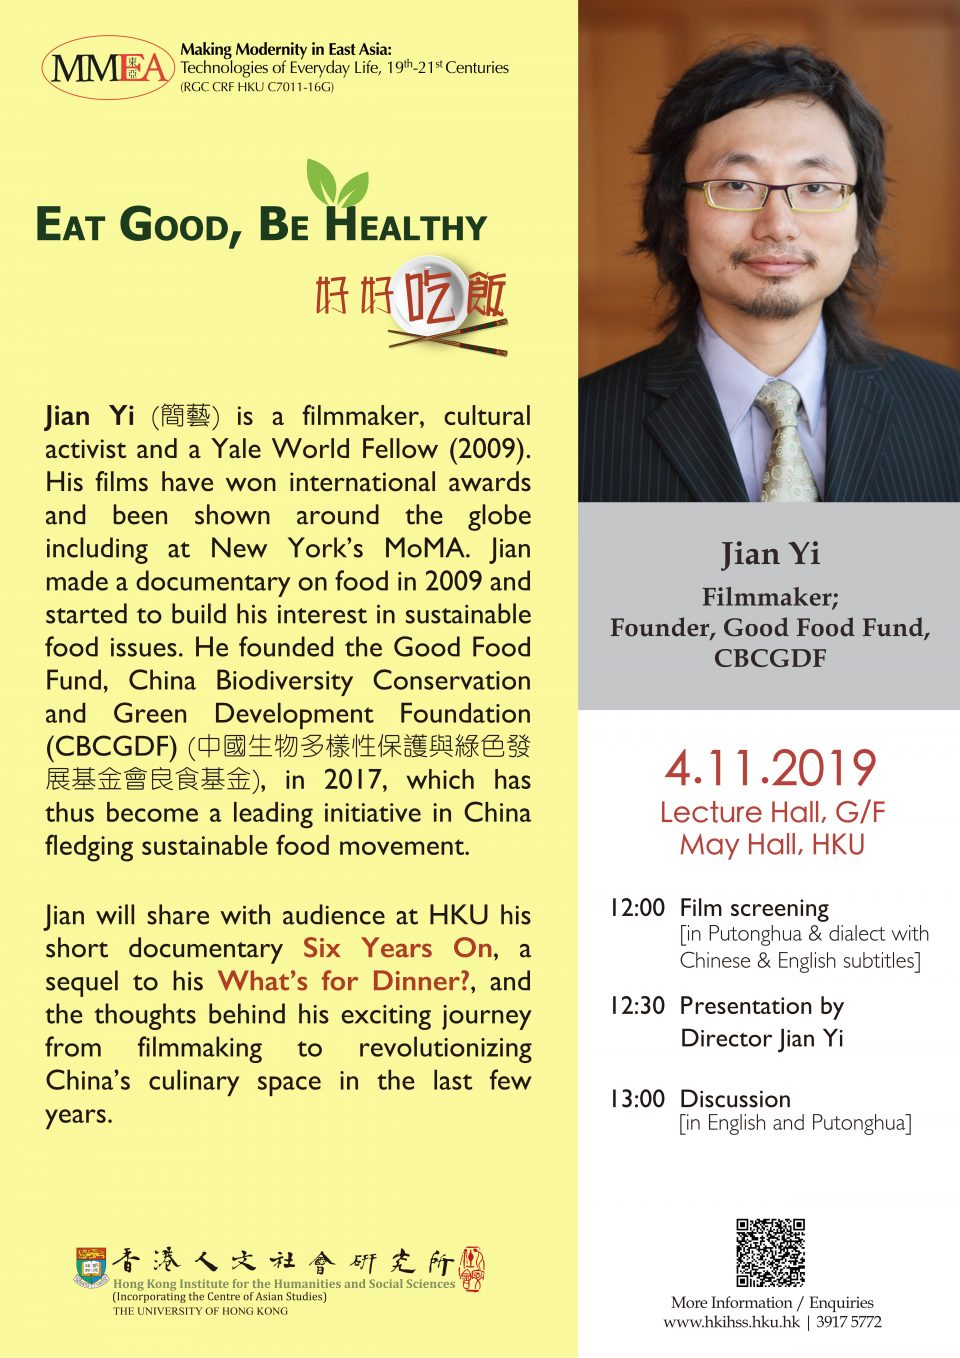 Eat Good, Be Healthy (好好吃飯): Film Screening and a Dialogue with Director Jian Yi (November 4, 2019)